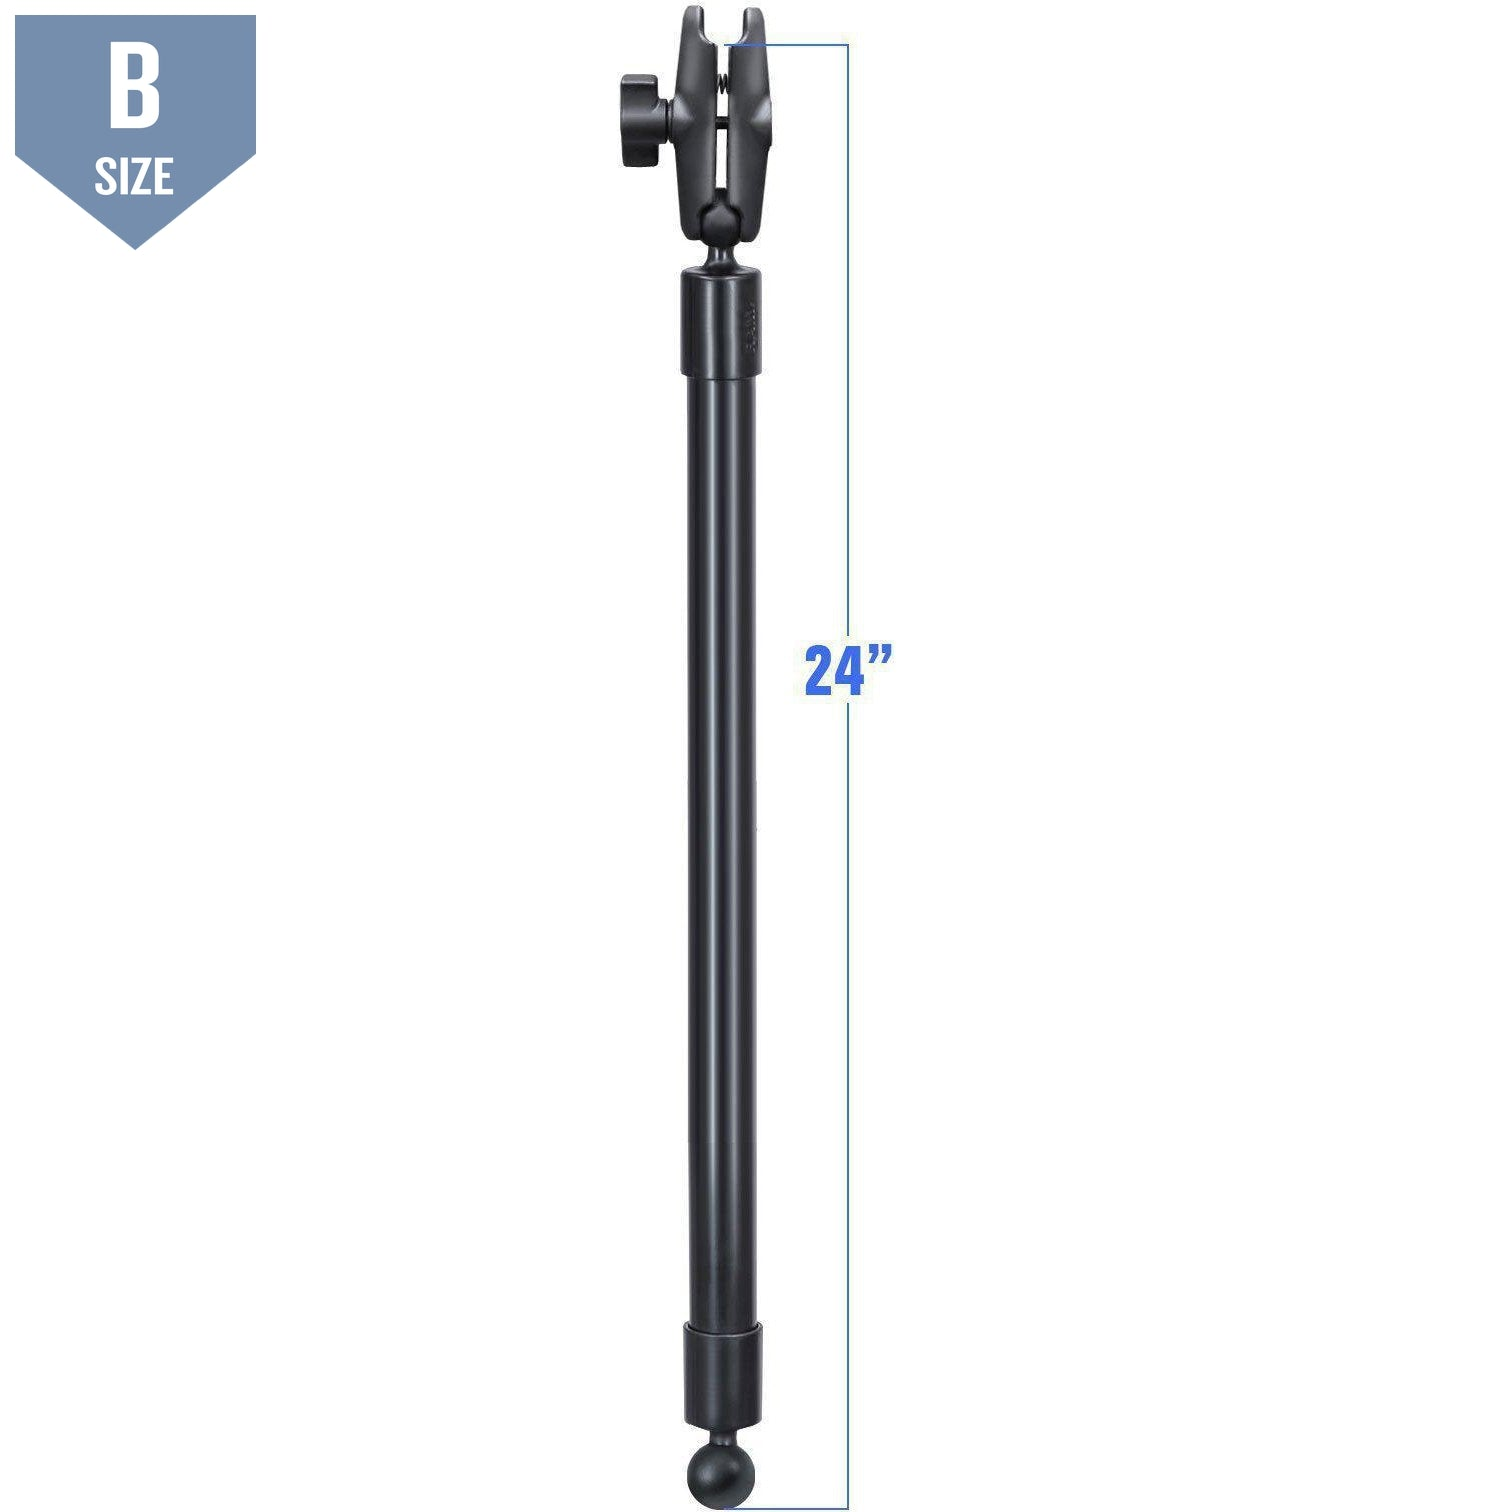 "RAM 24"" Pole Double Socket Arm (RAP-BB-230-24-201U)-Modest Mounts"